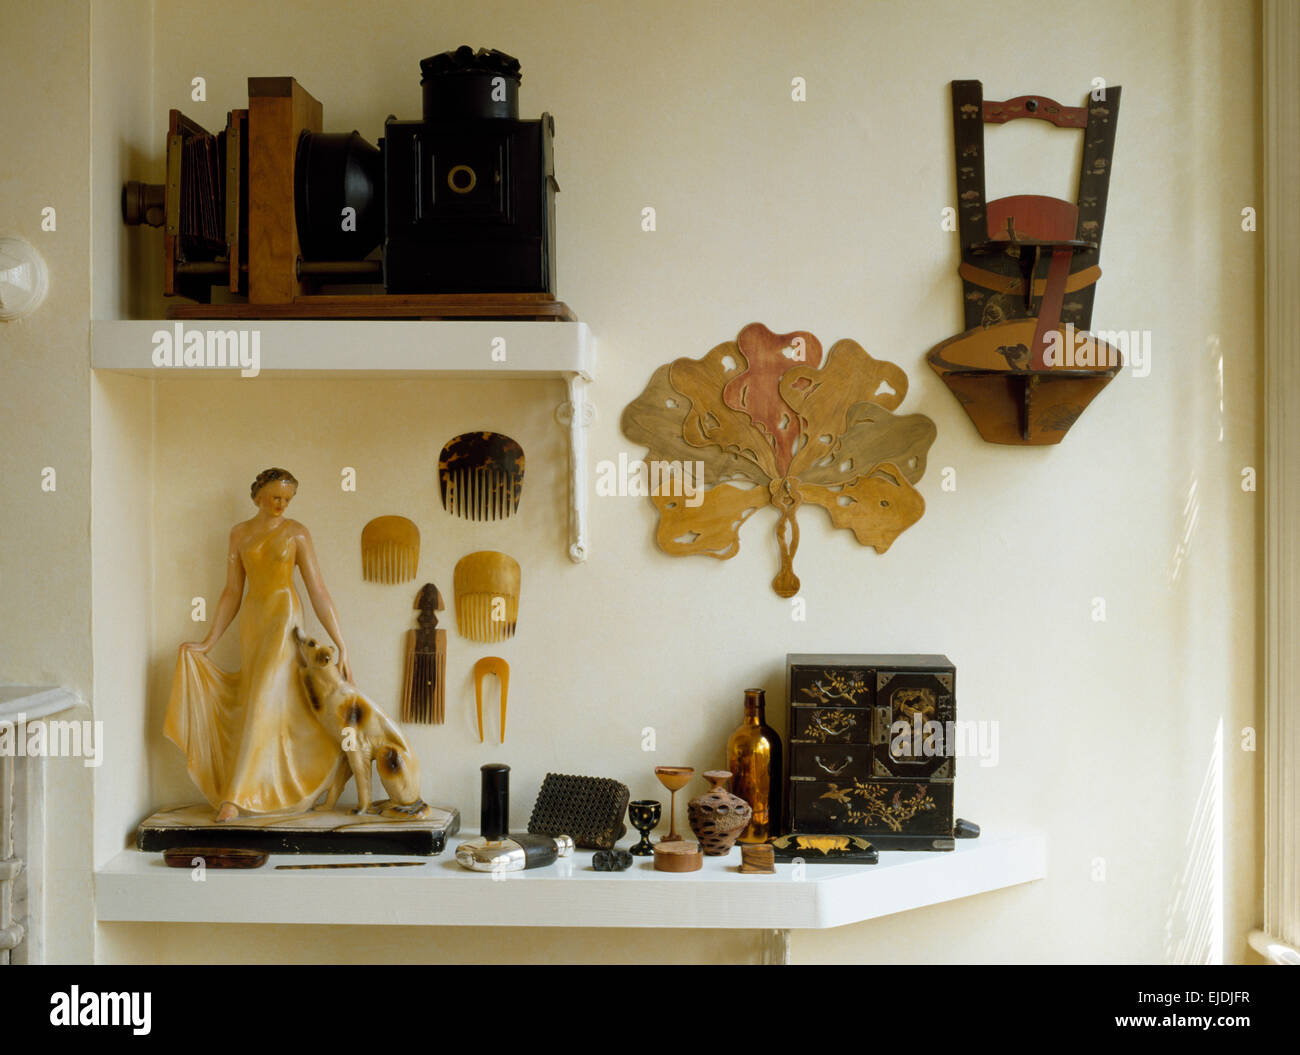 Shelves with a collection of thirties artefacts - Stock Image